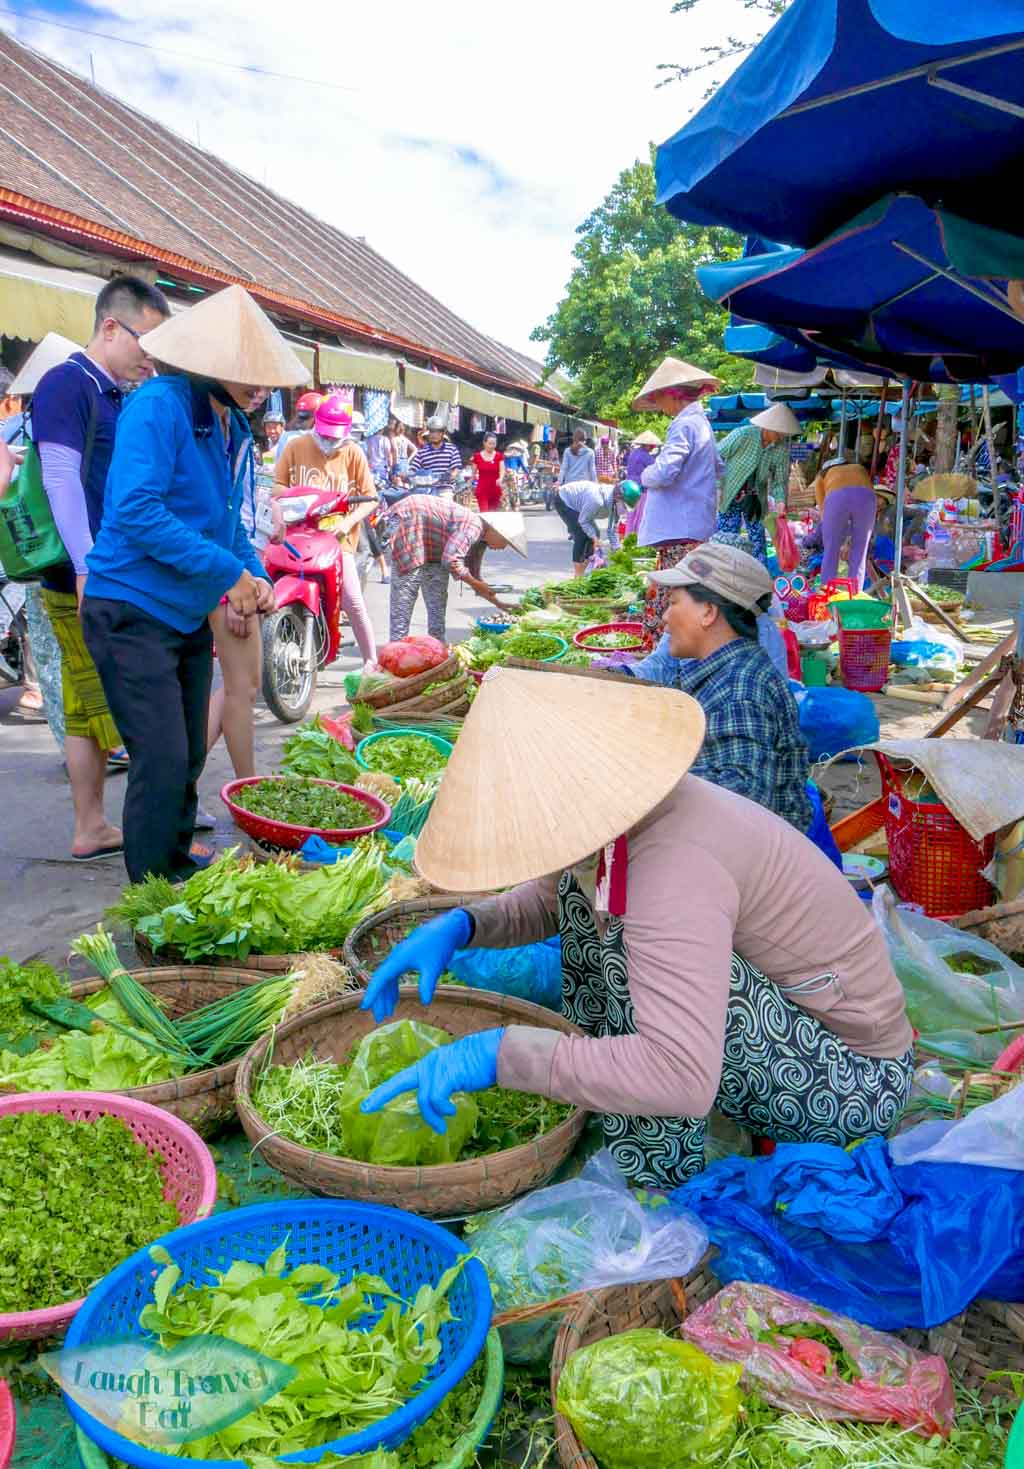 veggie store in central market, Hoi An, Vietnam - Laugh Travel Eat